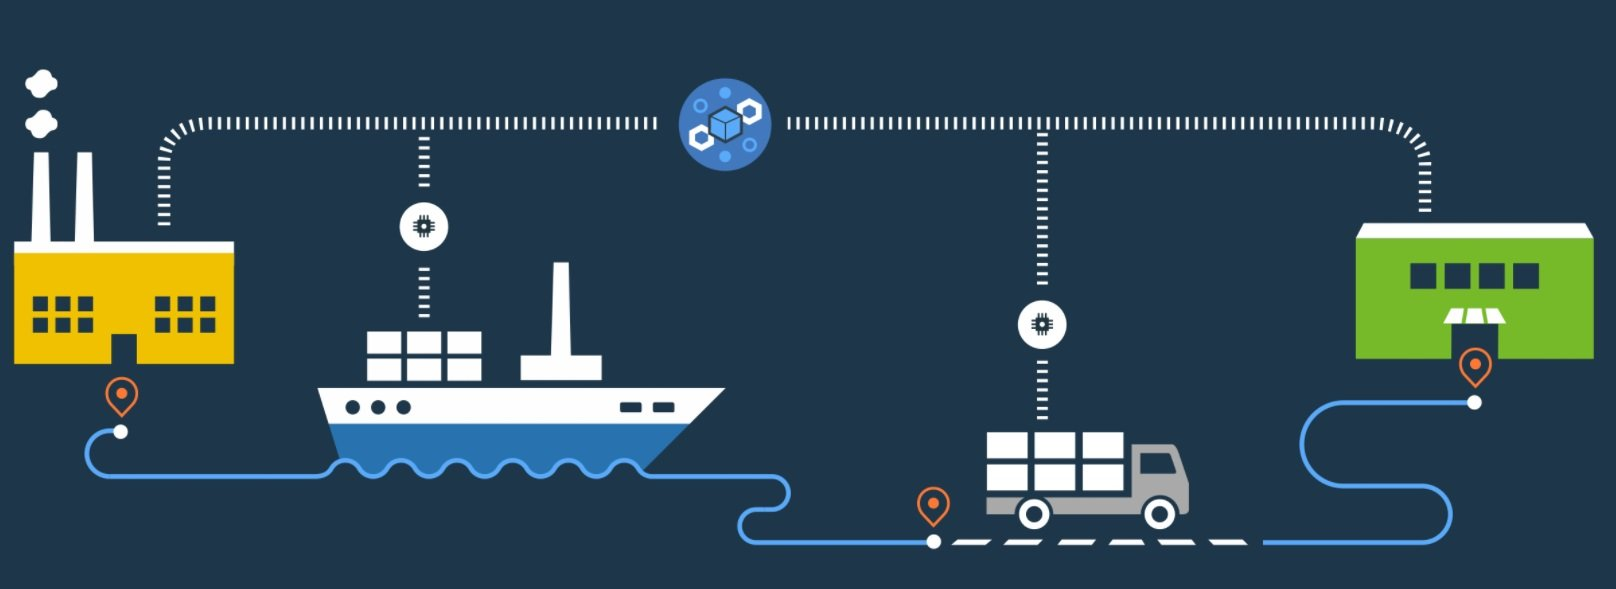 introduction to blockchain supply chain